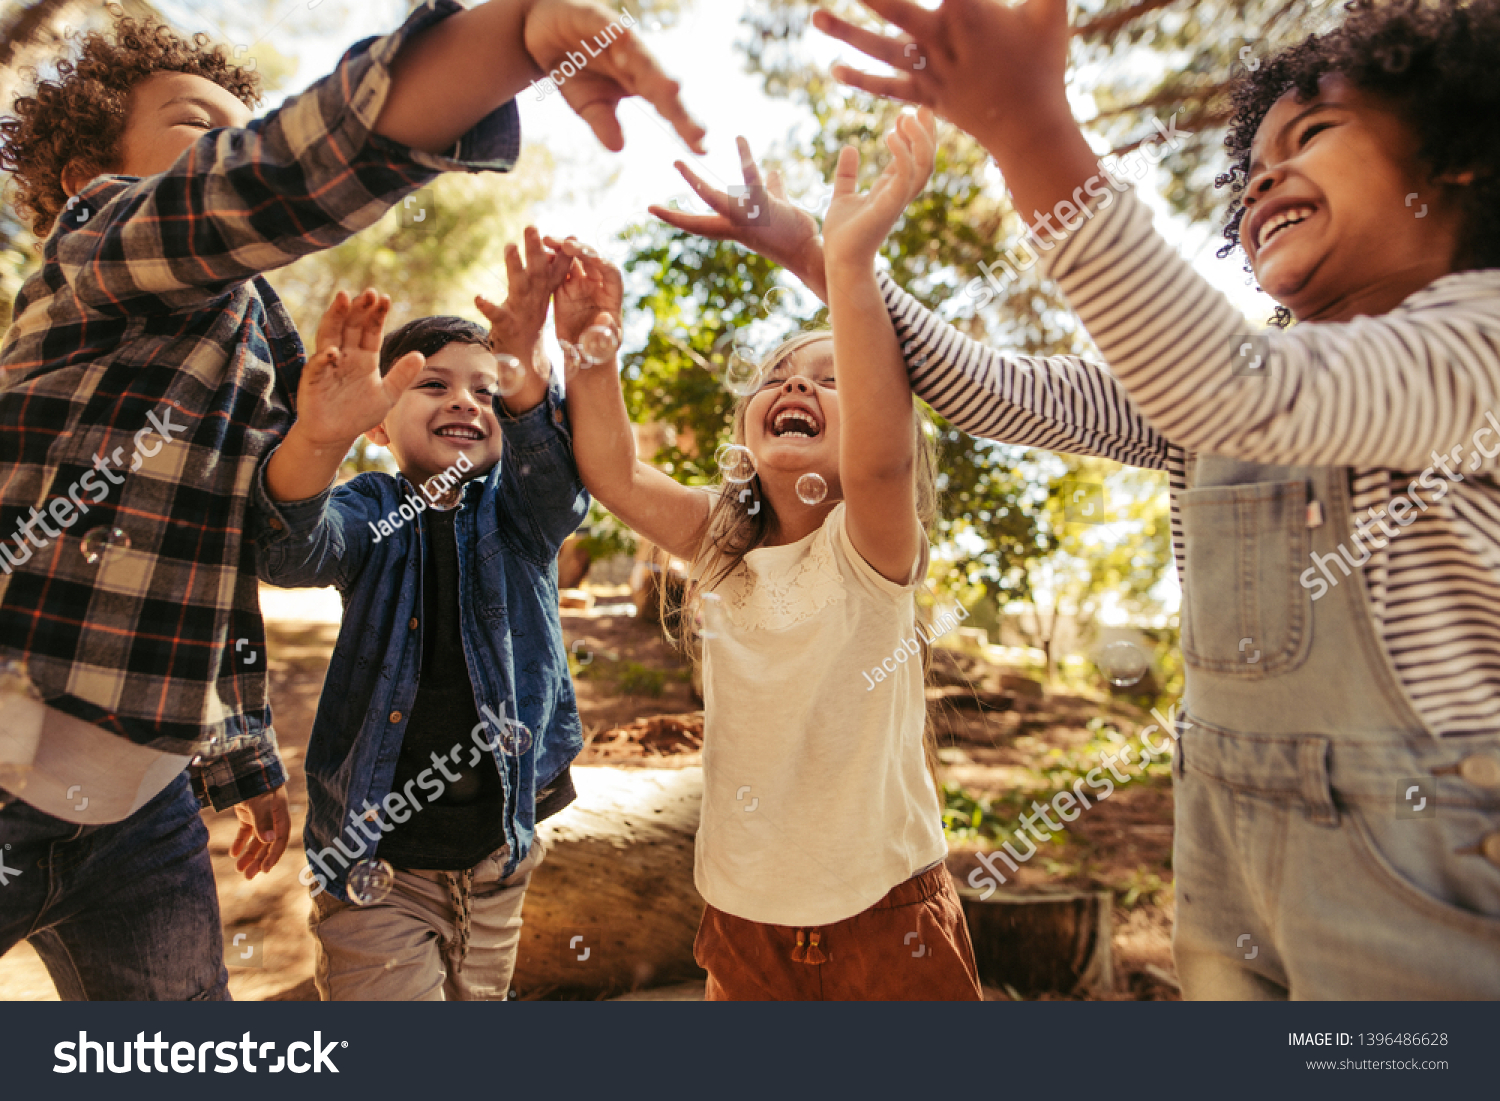 Group of kids playing with soap bubbles in forest. Boy blowing soap bubbles with friends trying to catch the bubbles. #1396486628